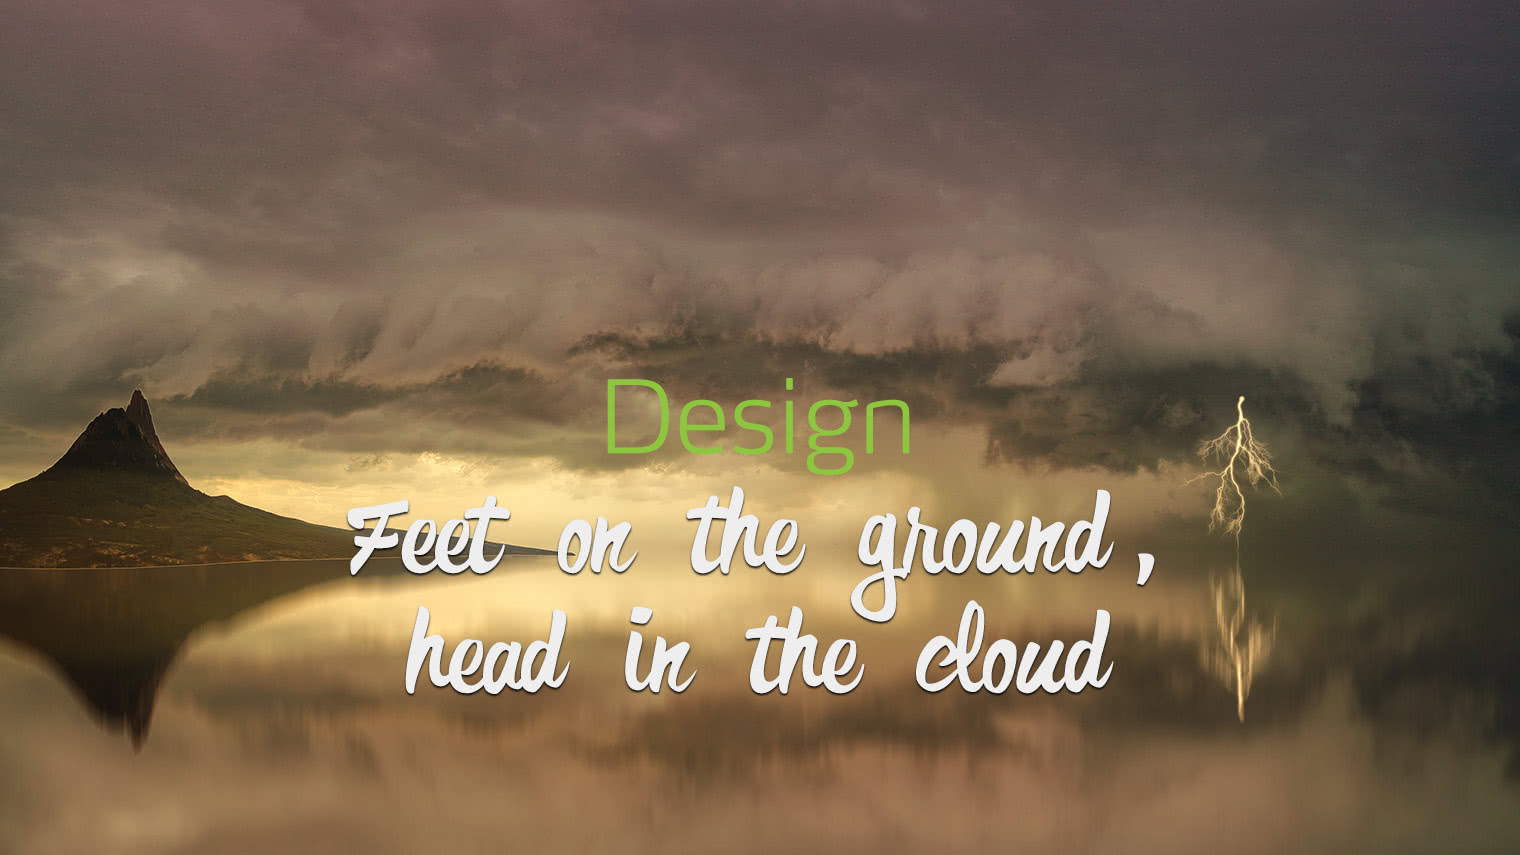 Design: feet on the ground, head in the cloud